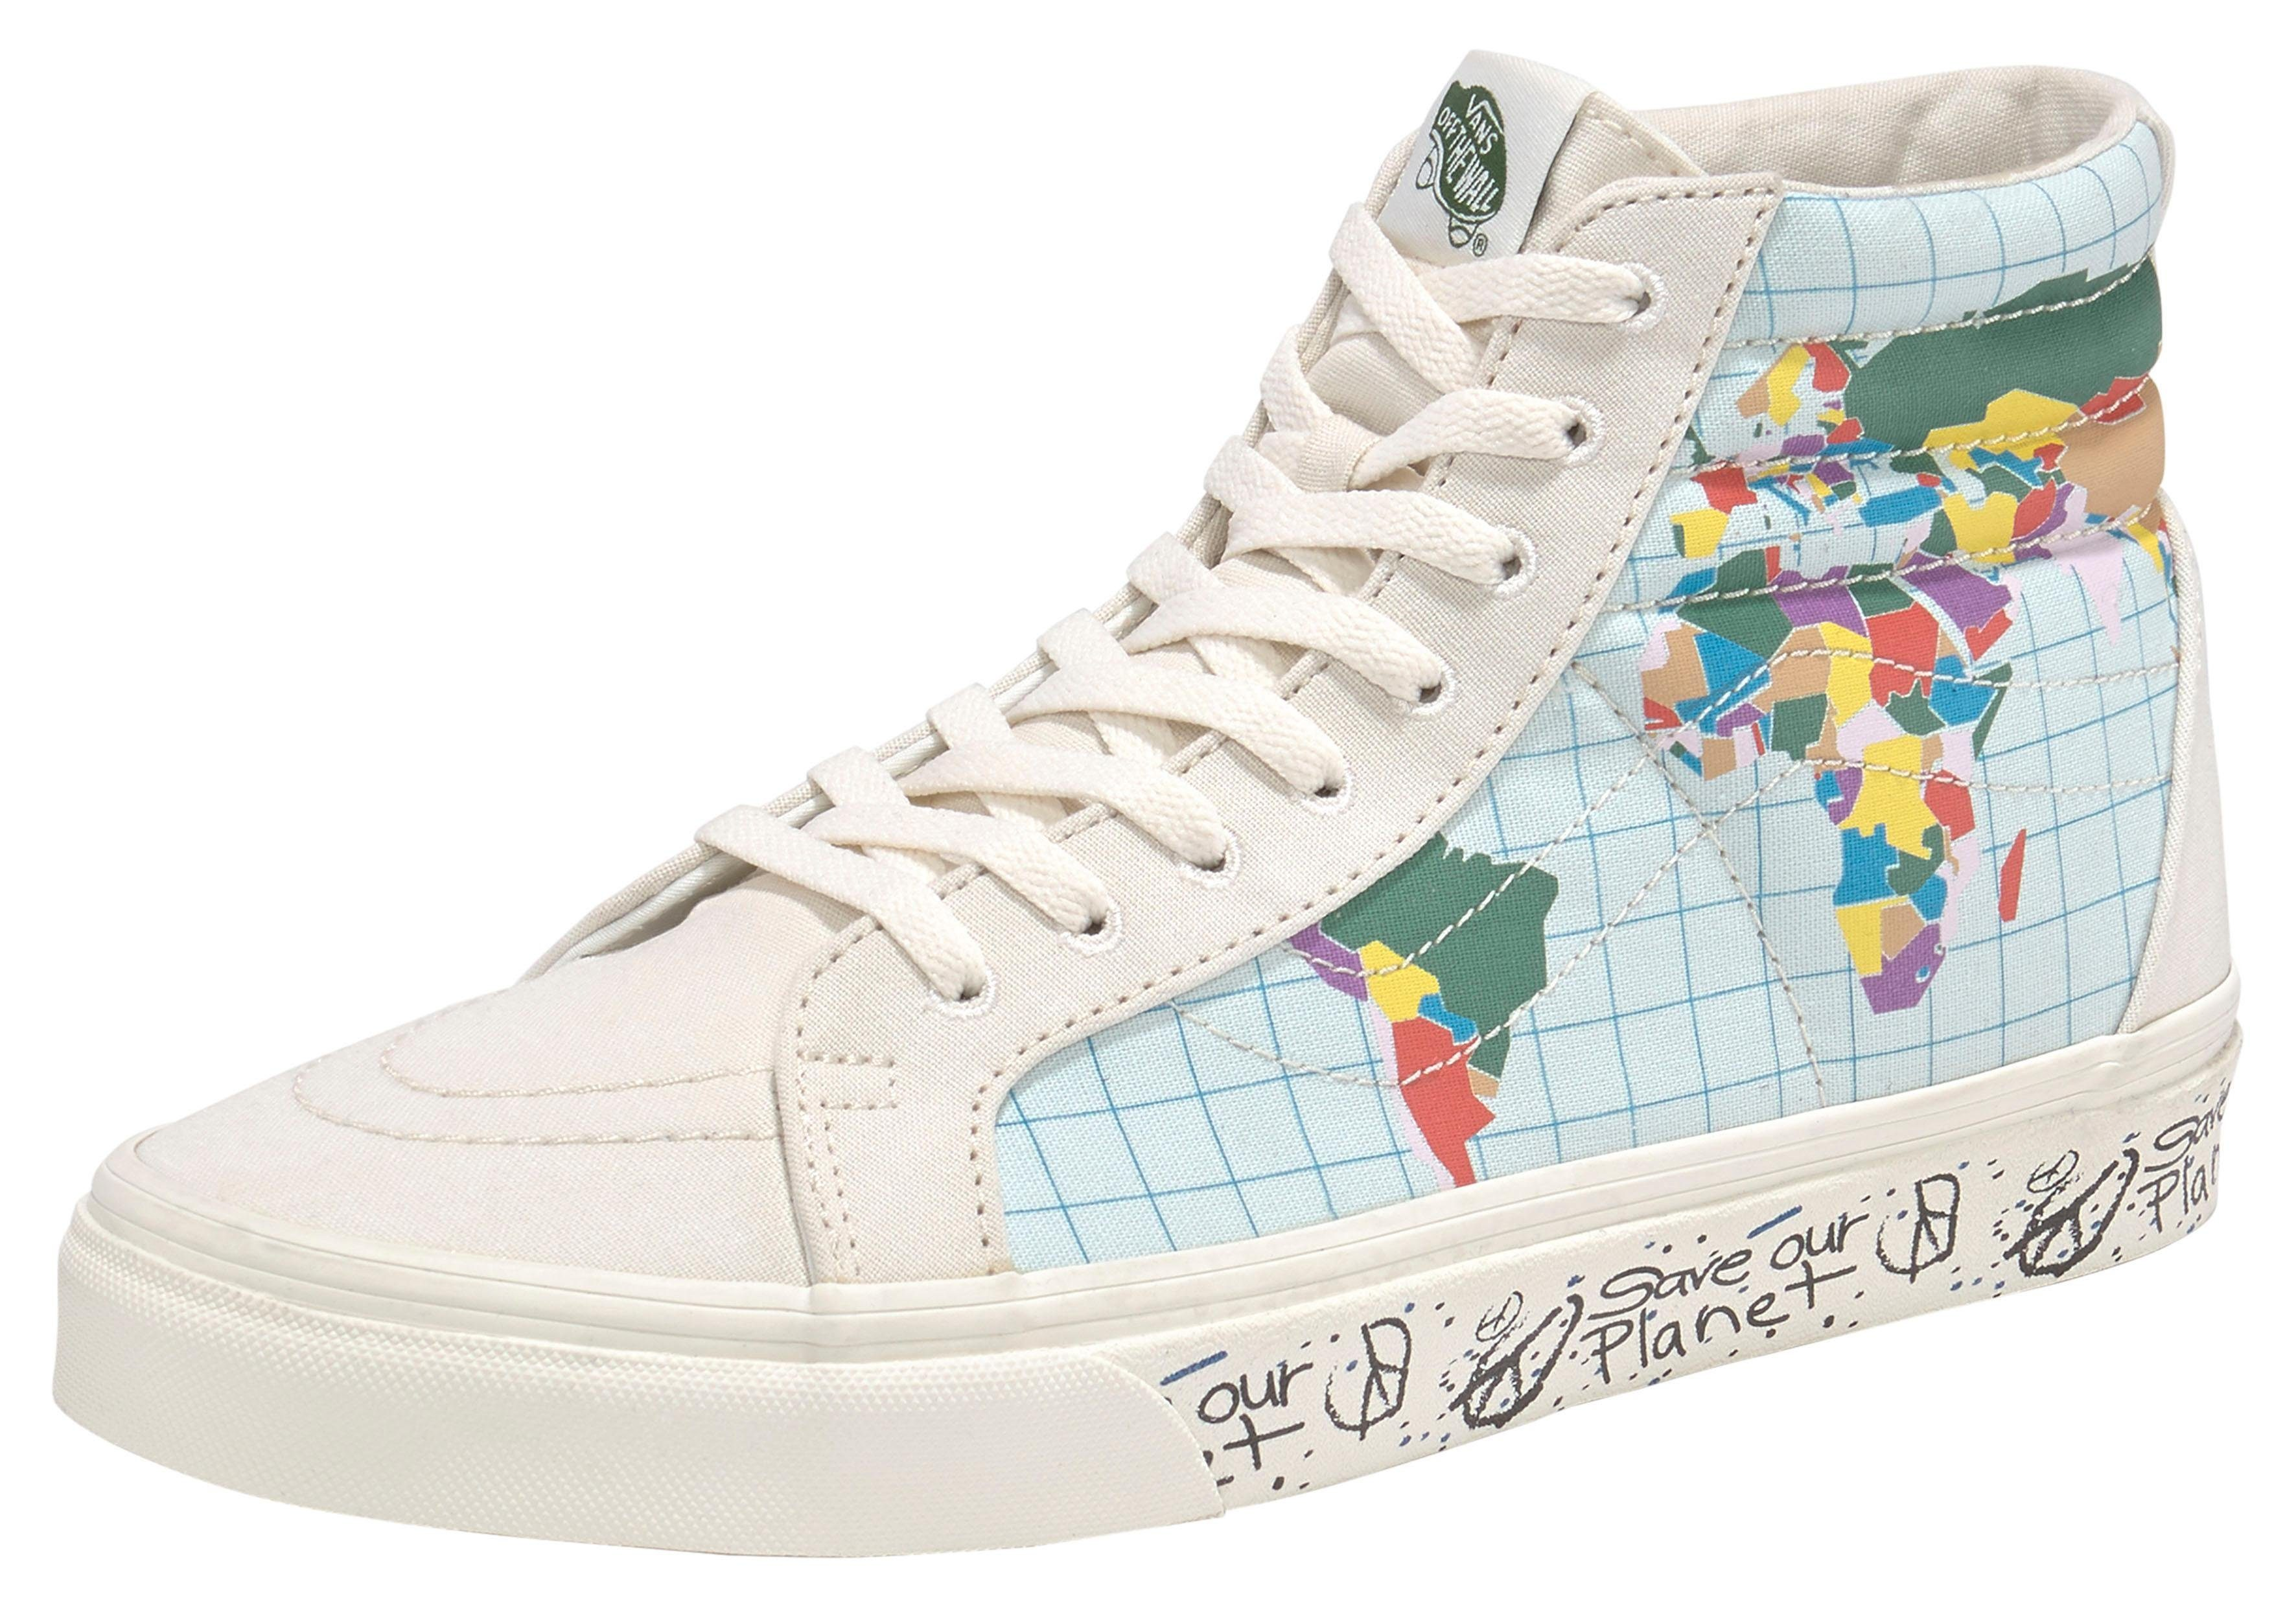 sneakers »SK8 Hi Reissue (Save Our Planet)«